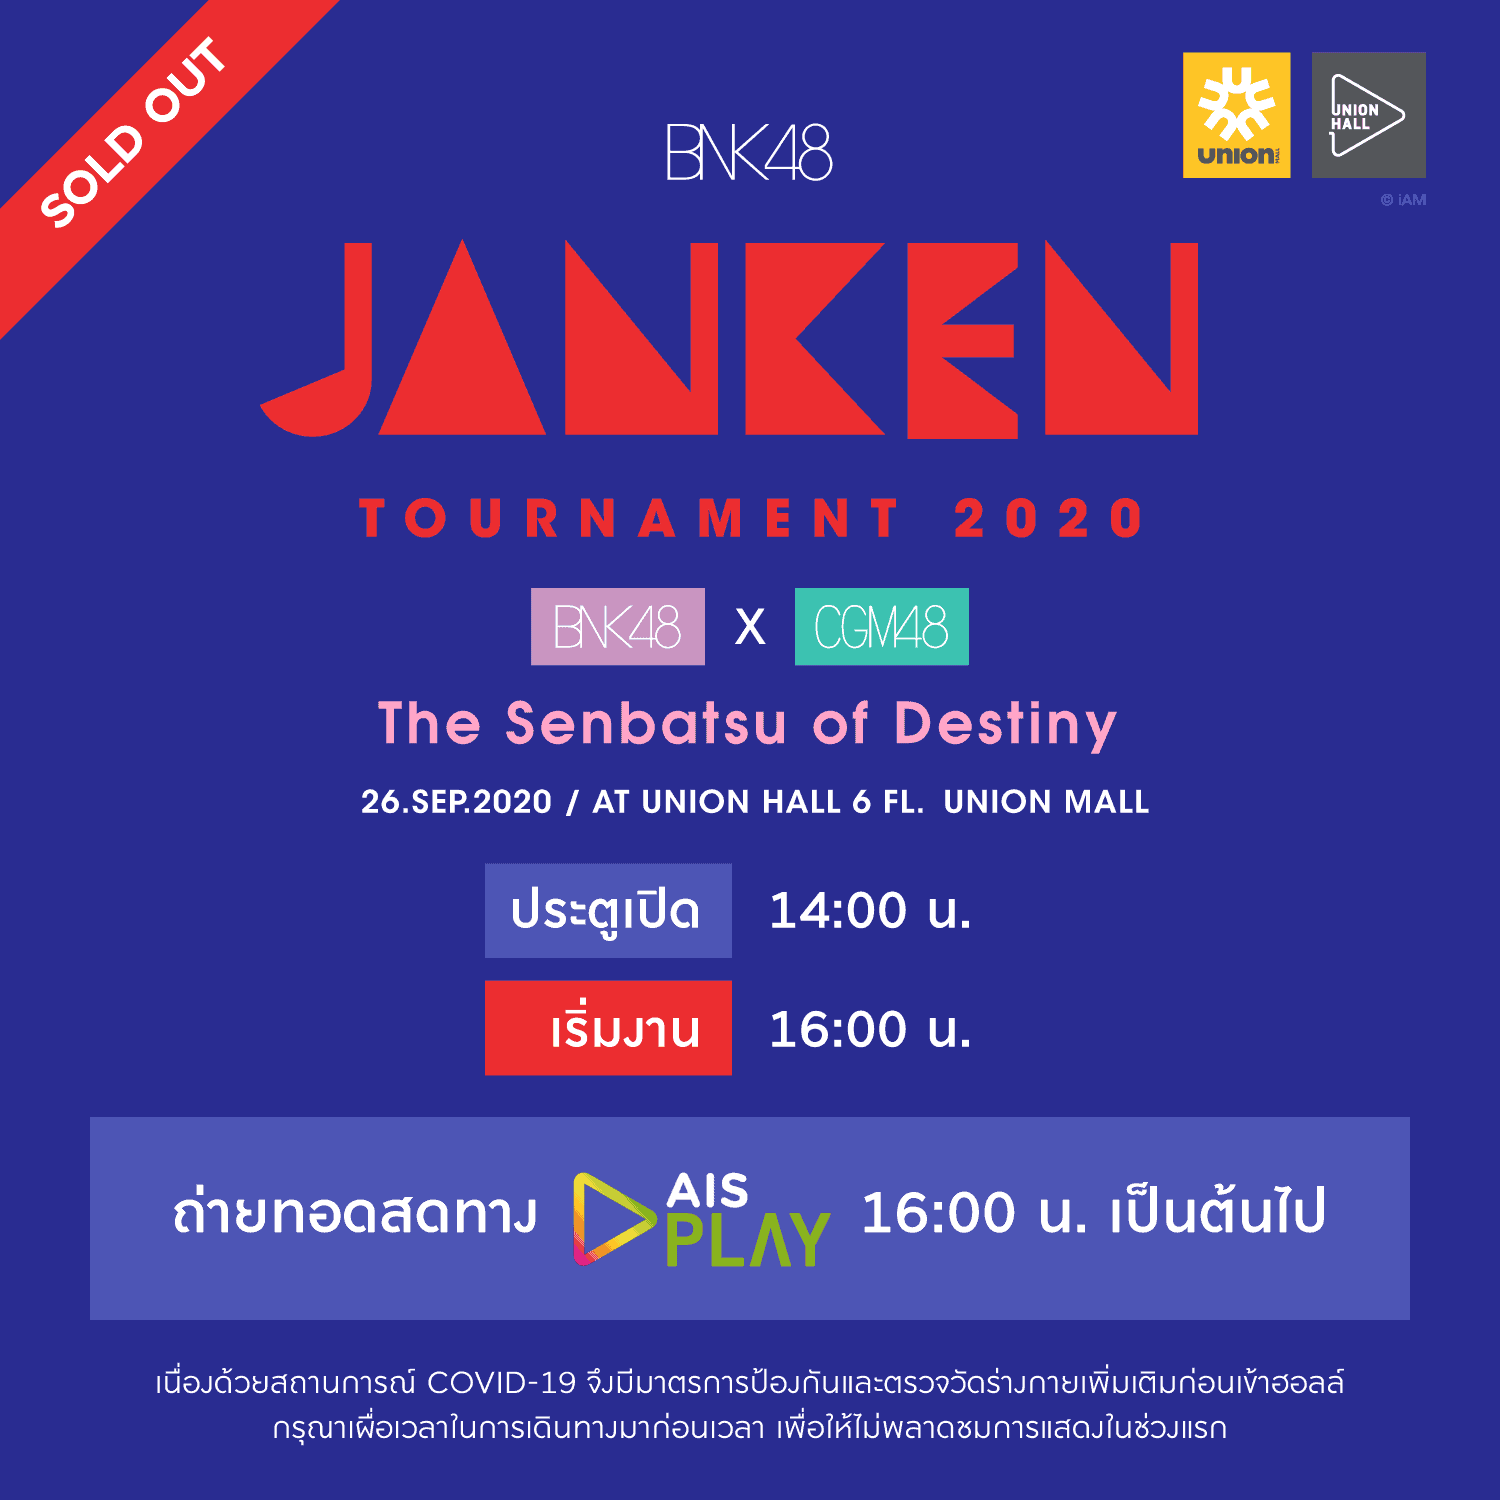 BNK48 JANKEN Tournament 2020 -The Senbatsu of Destiny-